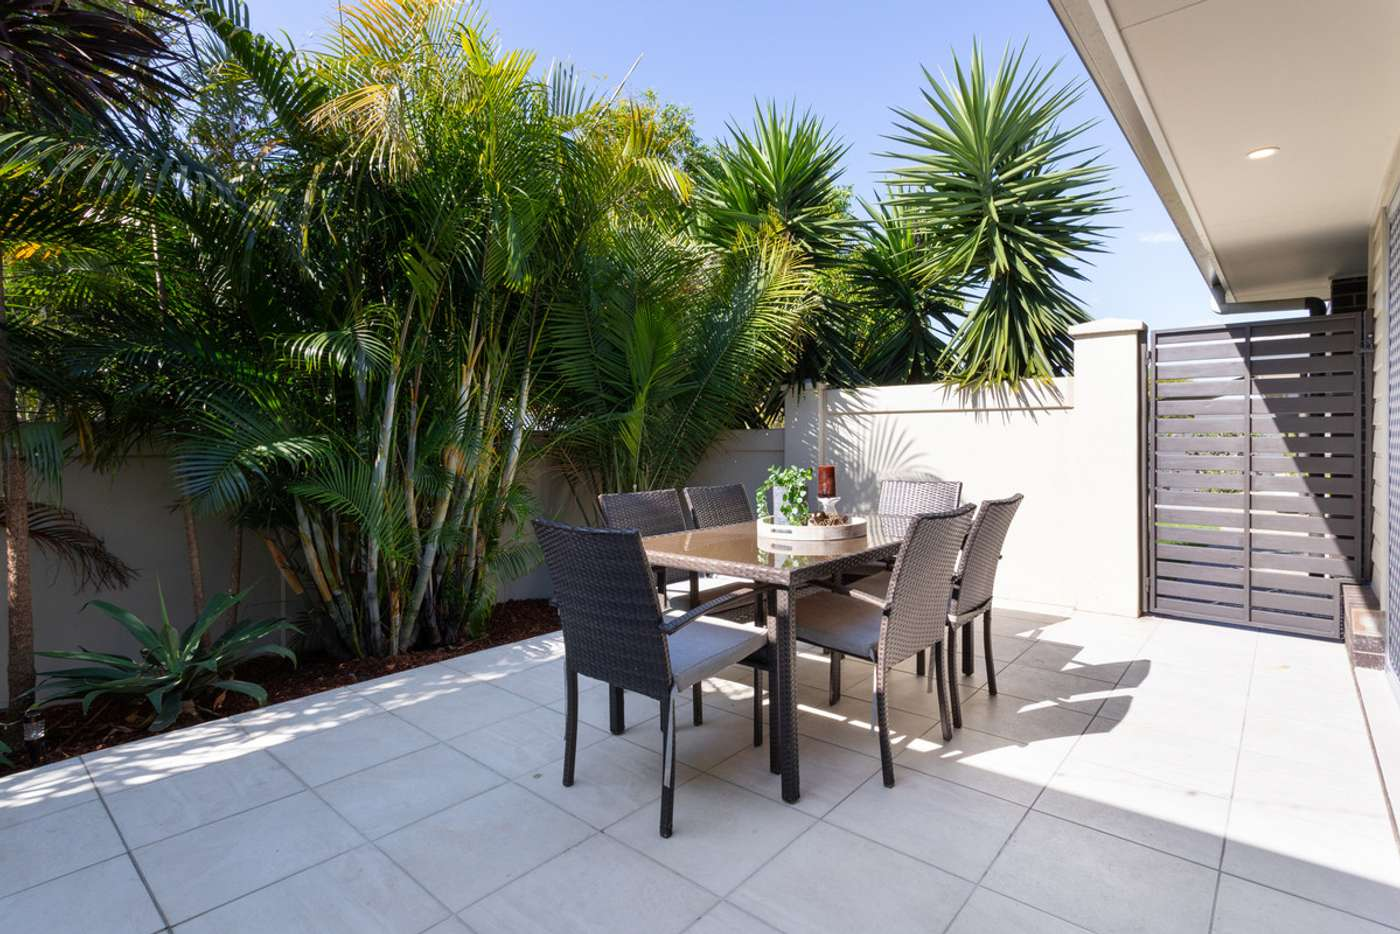 Sixth view of Homely house listing, 3 Rhodium Crescent, Hope Island QLD 4212